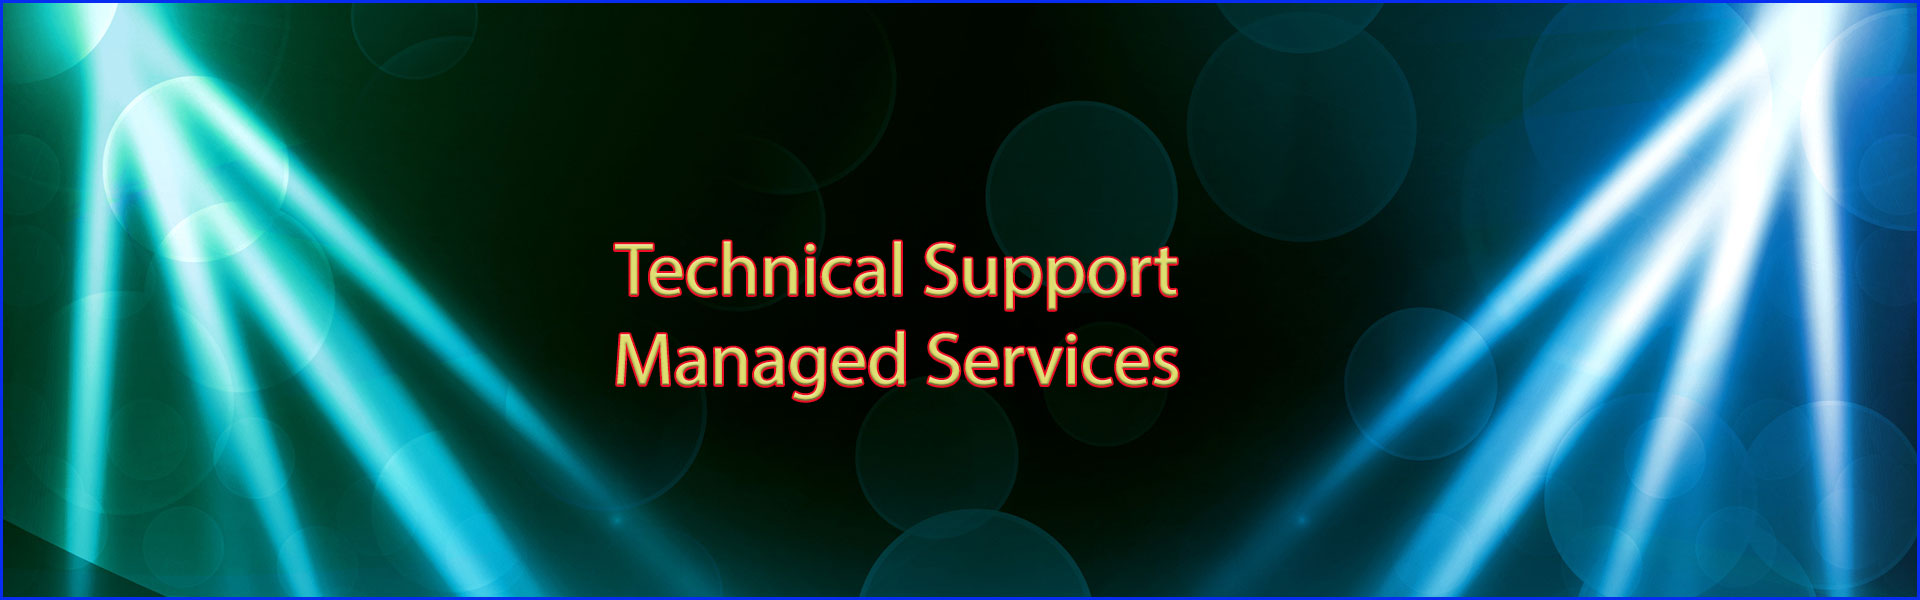 Technical Support - Managed Services